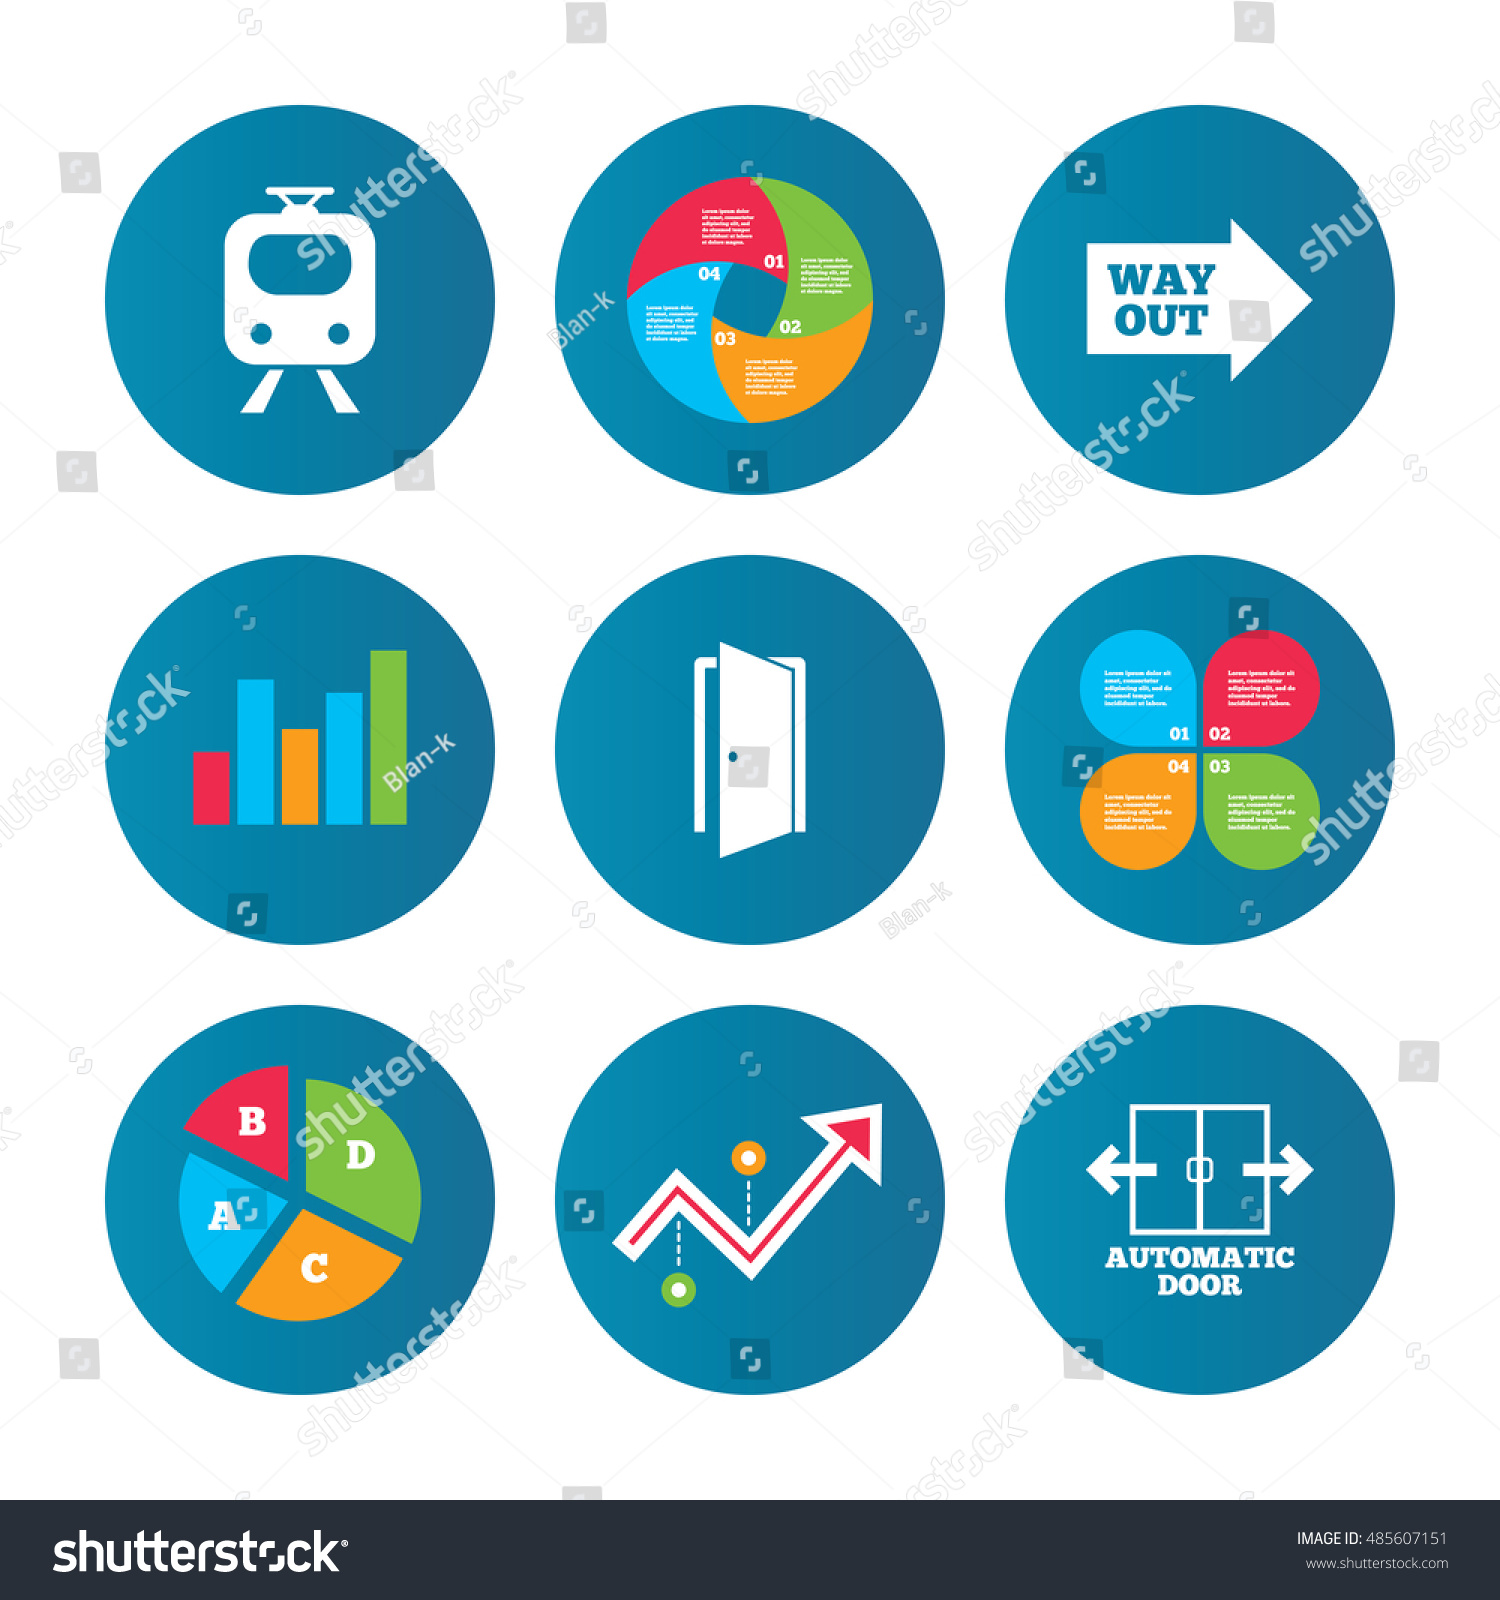 Business pie chart growth curve presentation stock vector 485607151 business pie chart growth curve presentation buttons train railway icon automatic door nvjuhfo Choice Image